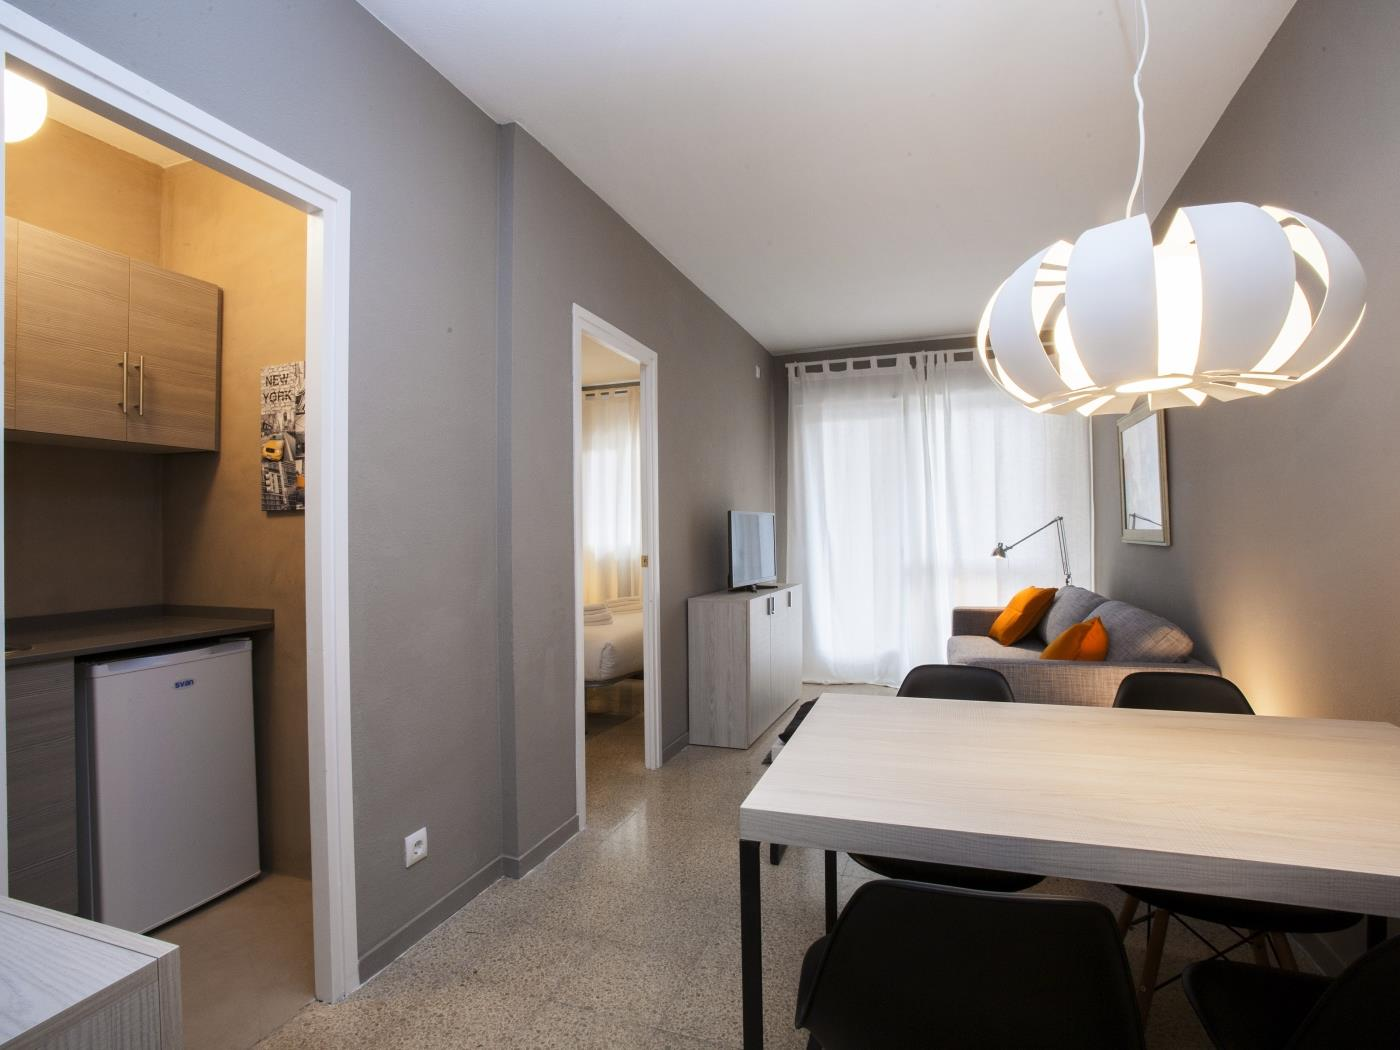 Cozy apartment ideal for small families near Sagrada Familia for 4 - My Space Barcelona Apartments